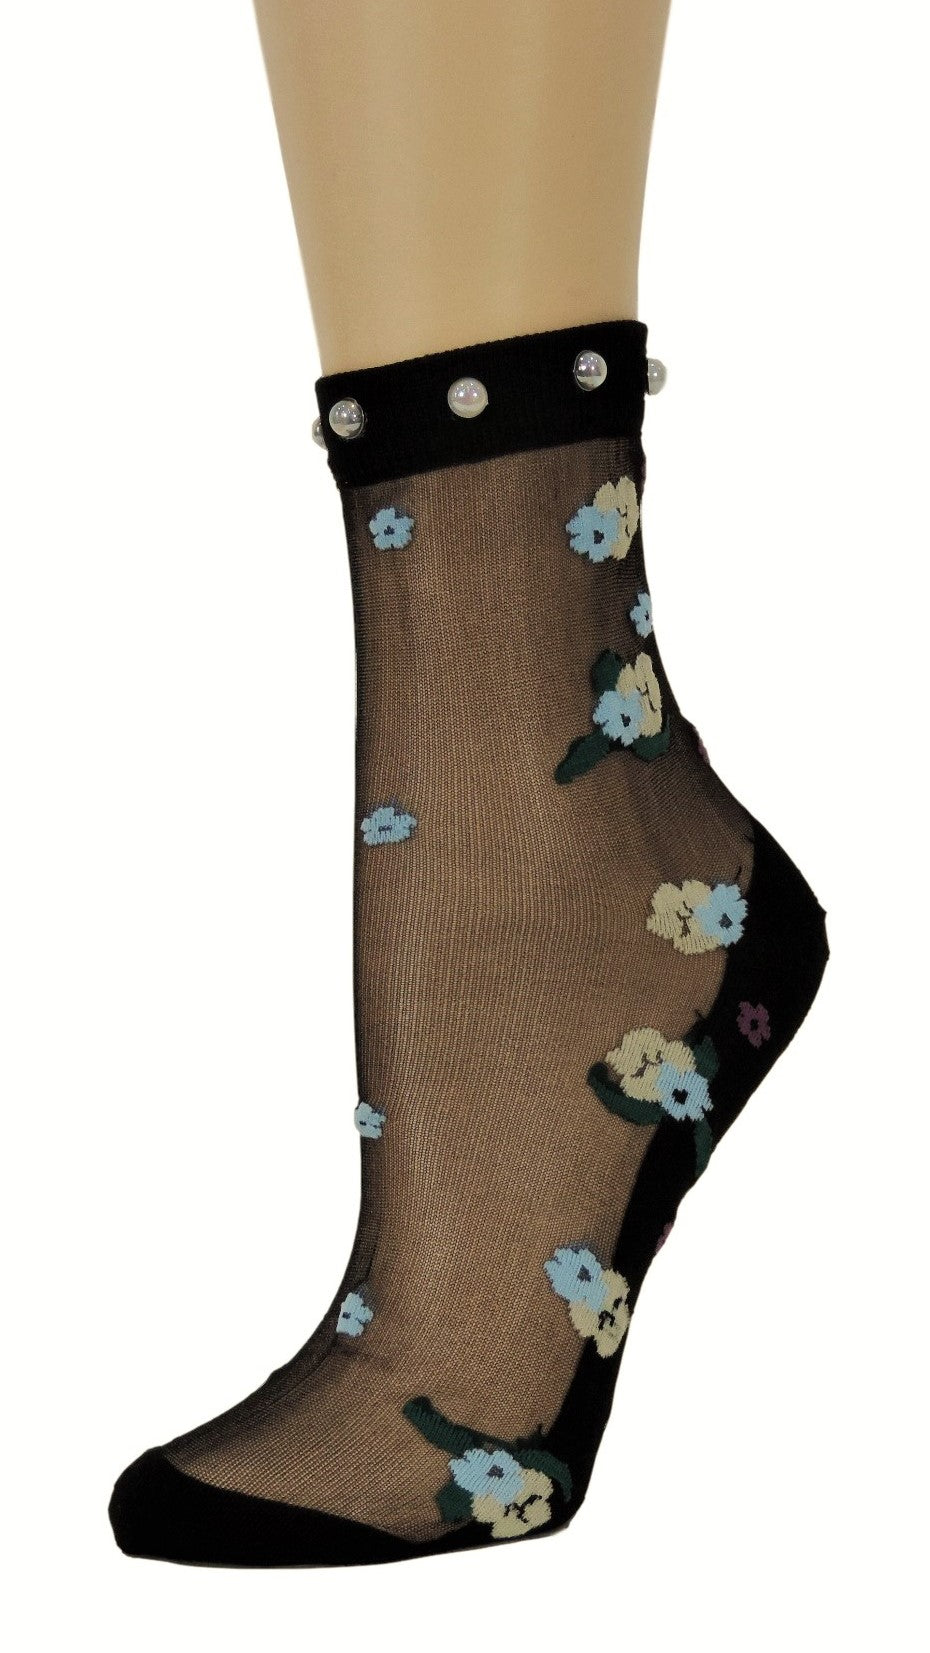 Dazzling Flowers Custom Sheer Socks with beads - Global Trendz Fashion®